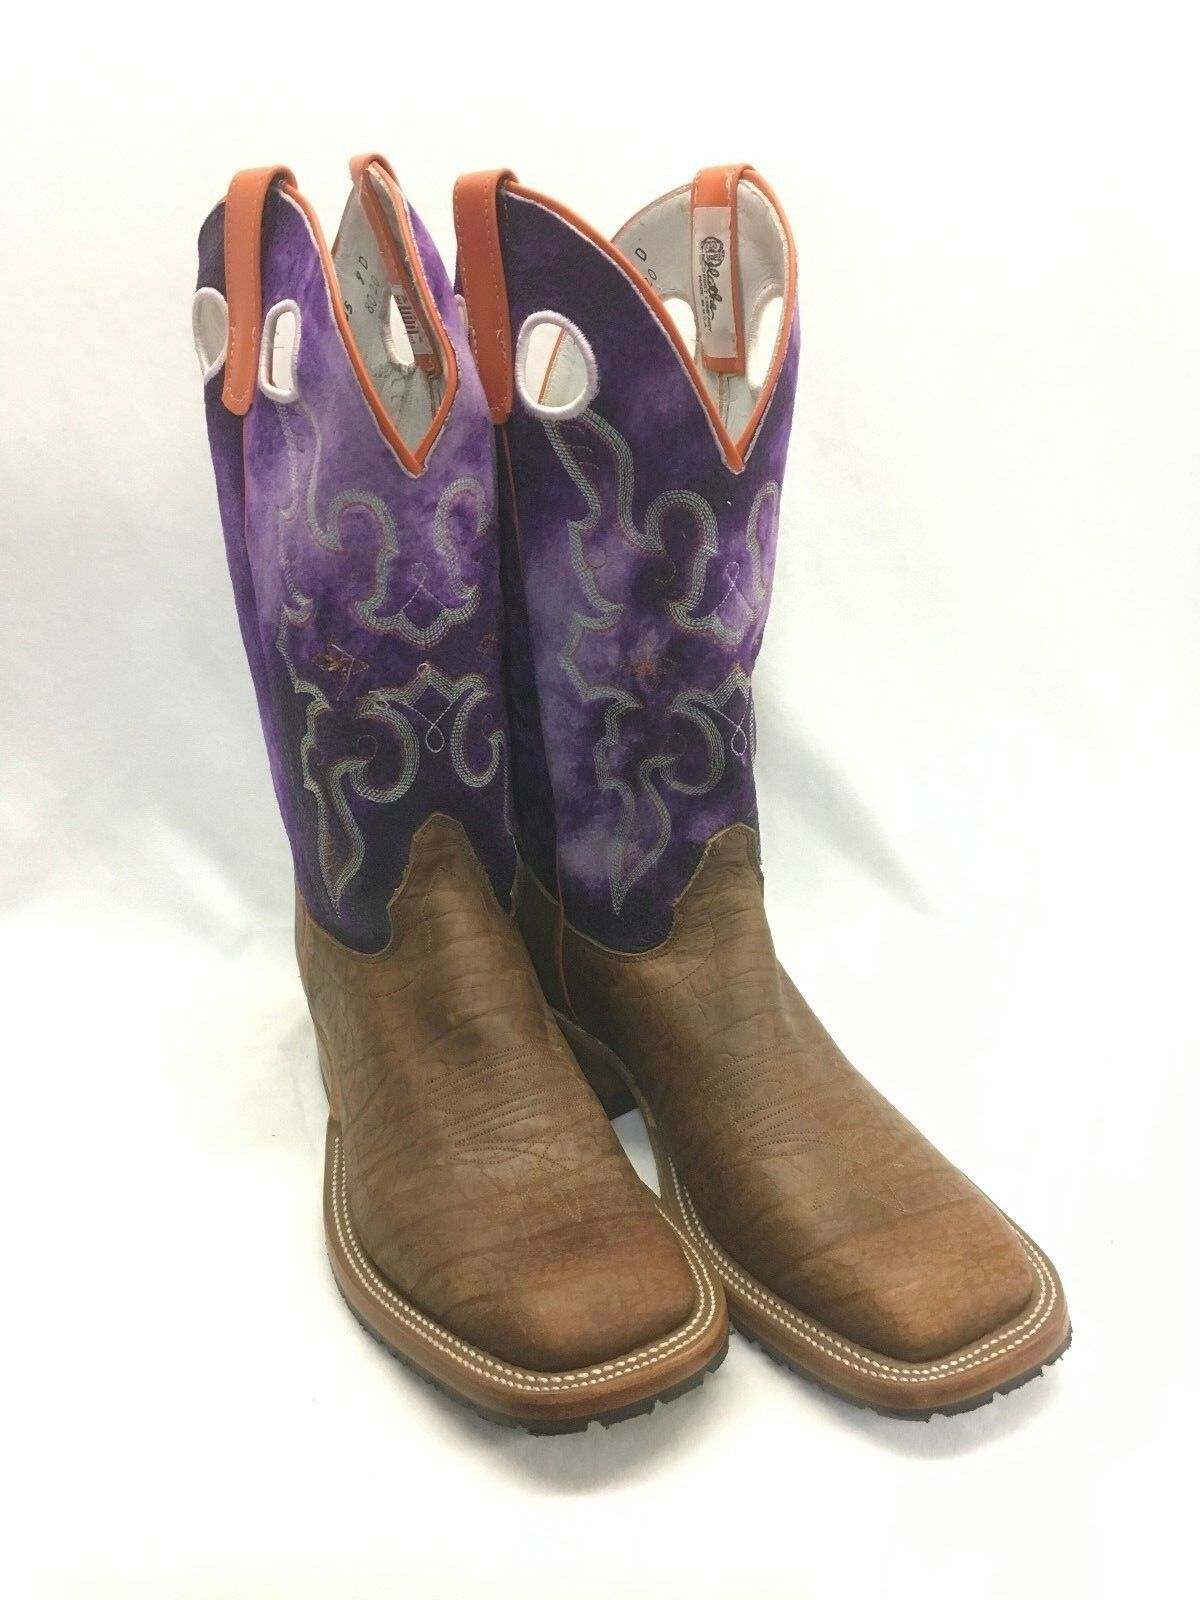 Men's Olathe Boots, Bison Square Toe w Suede Purple Top Style 8020